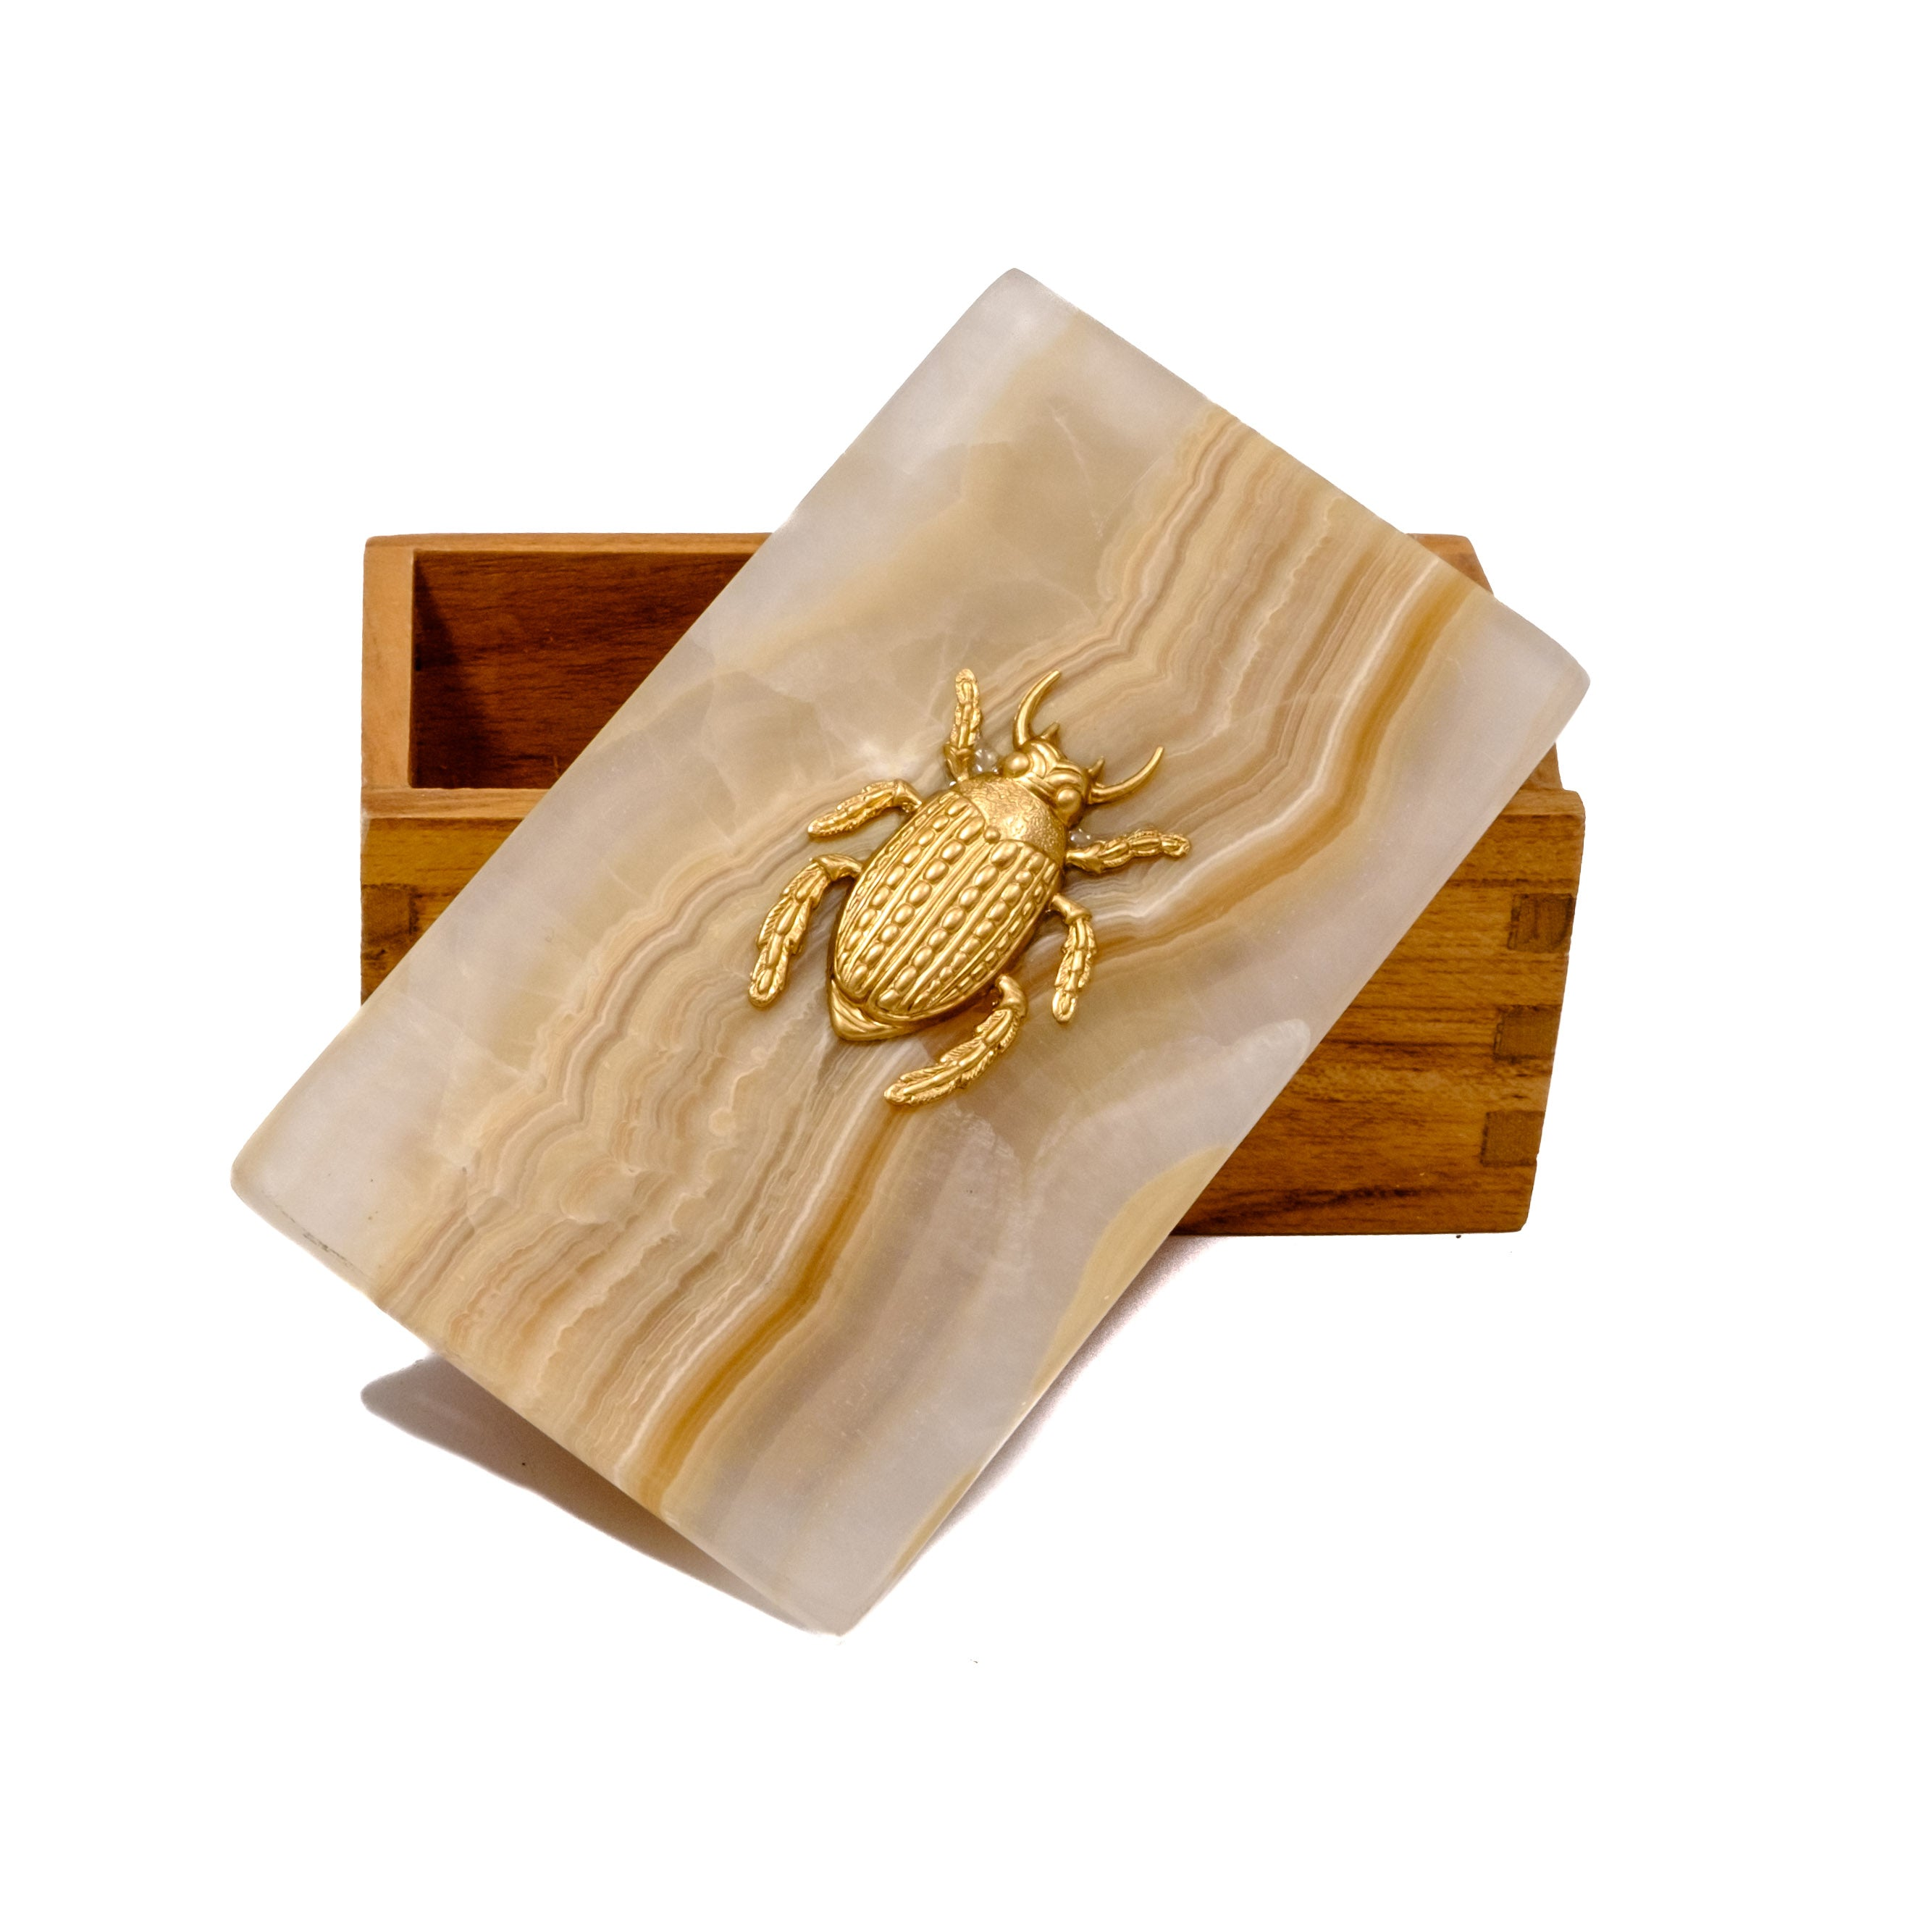 Garden beetle bug box by Mapleton Drive